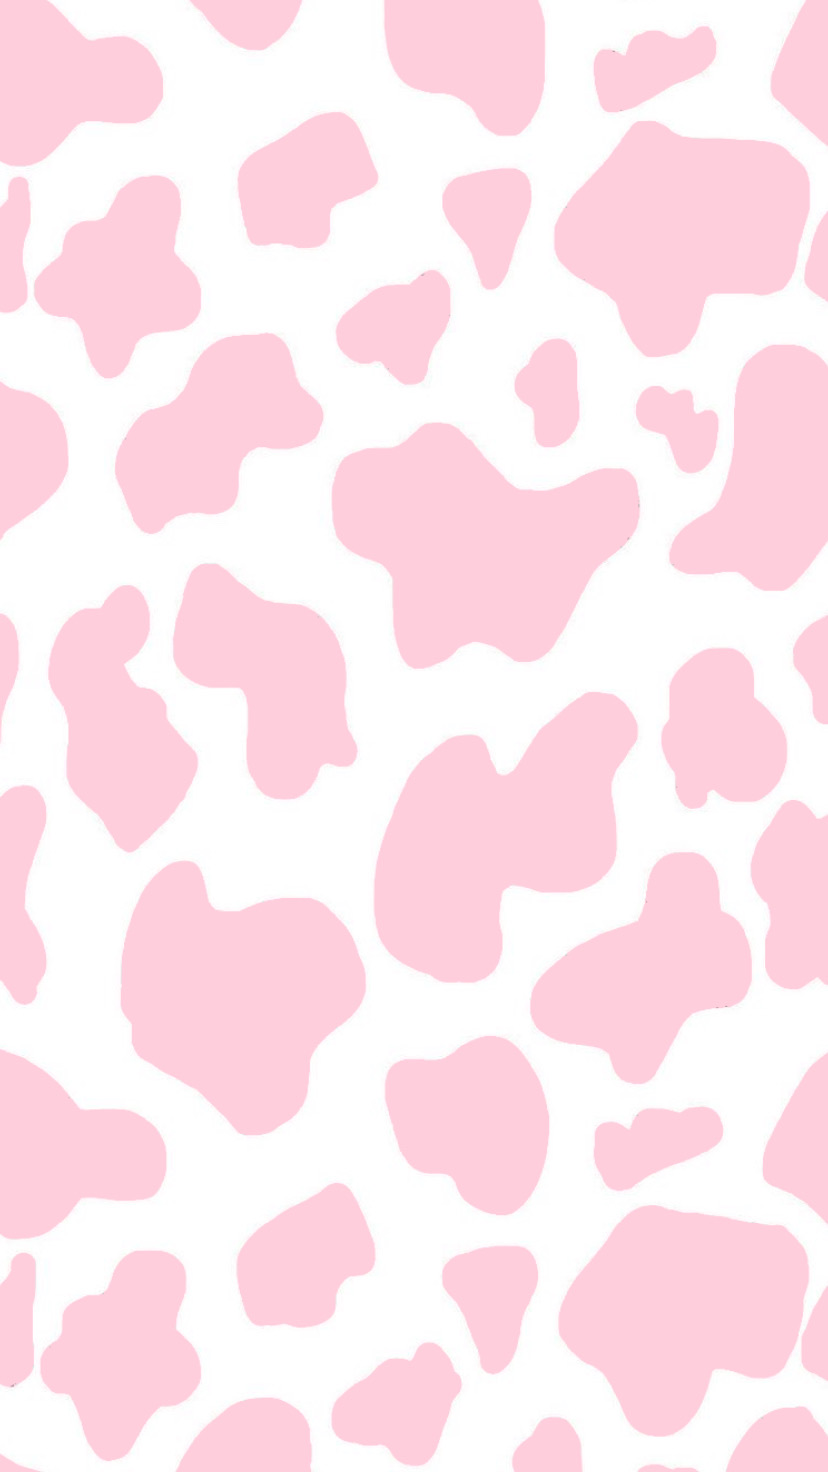 some cow prints ♡ 🐮 ♡  on We Heart It